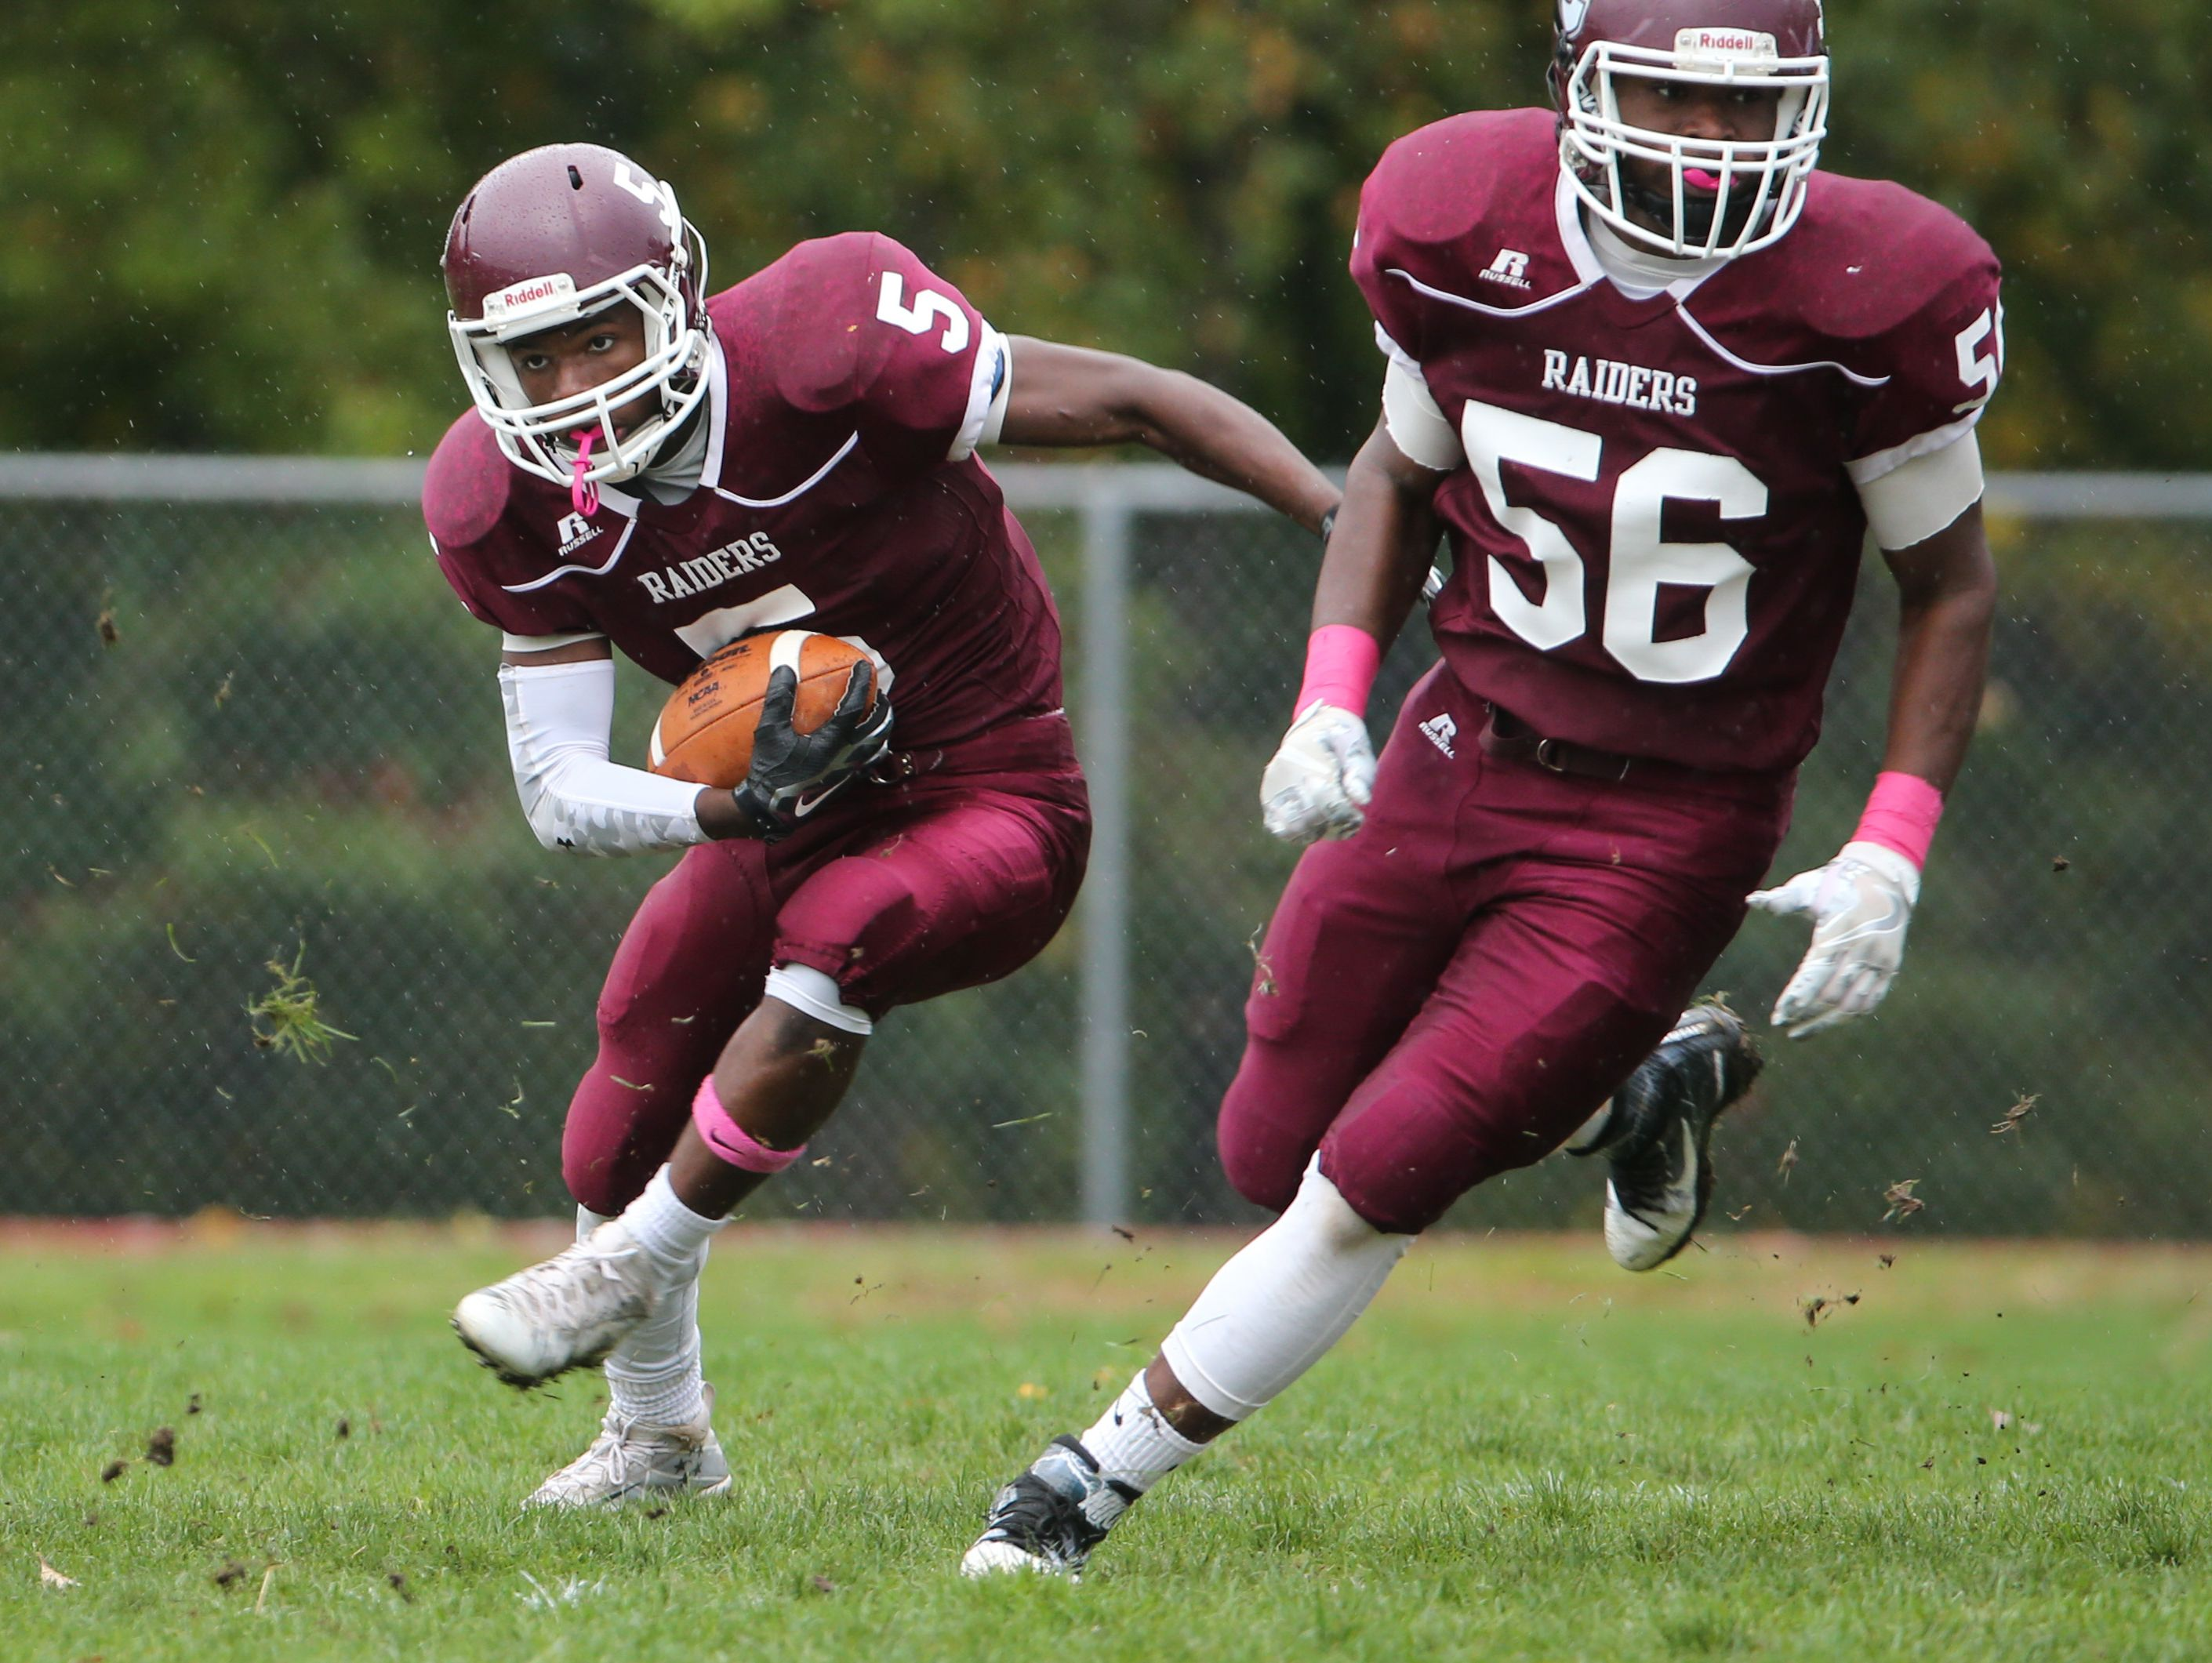 Concord's Lennox Nembhard, No. 5, changes direction as Earl Jester, No. 56, blocks downfield.